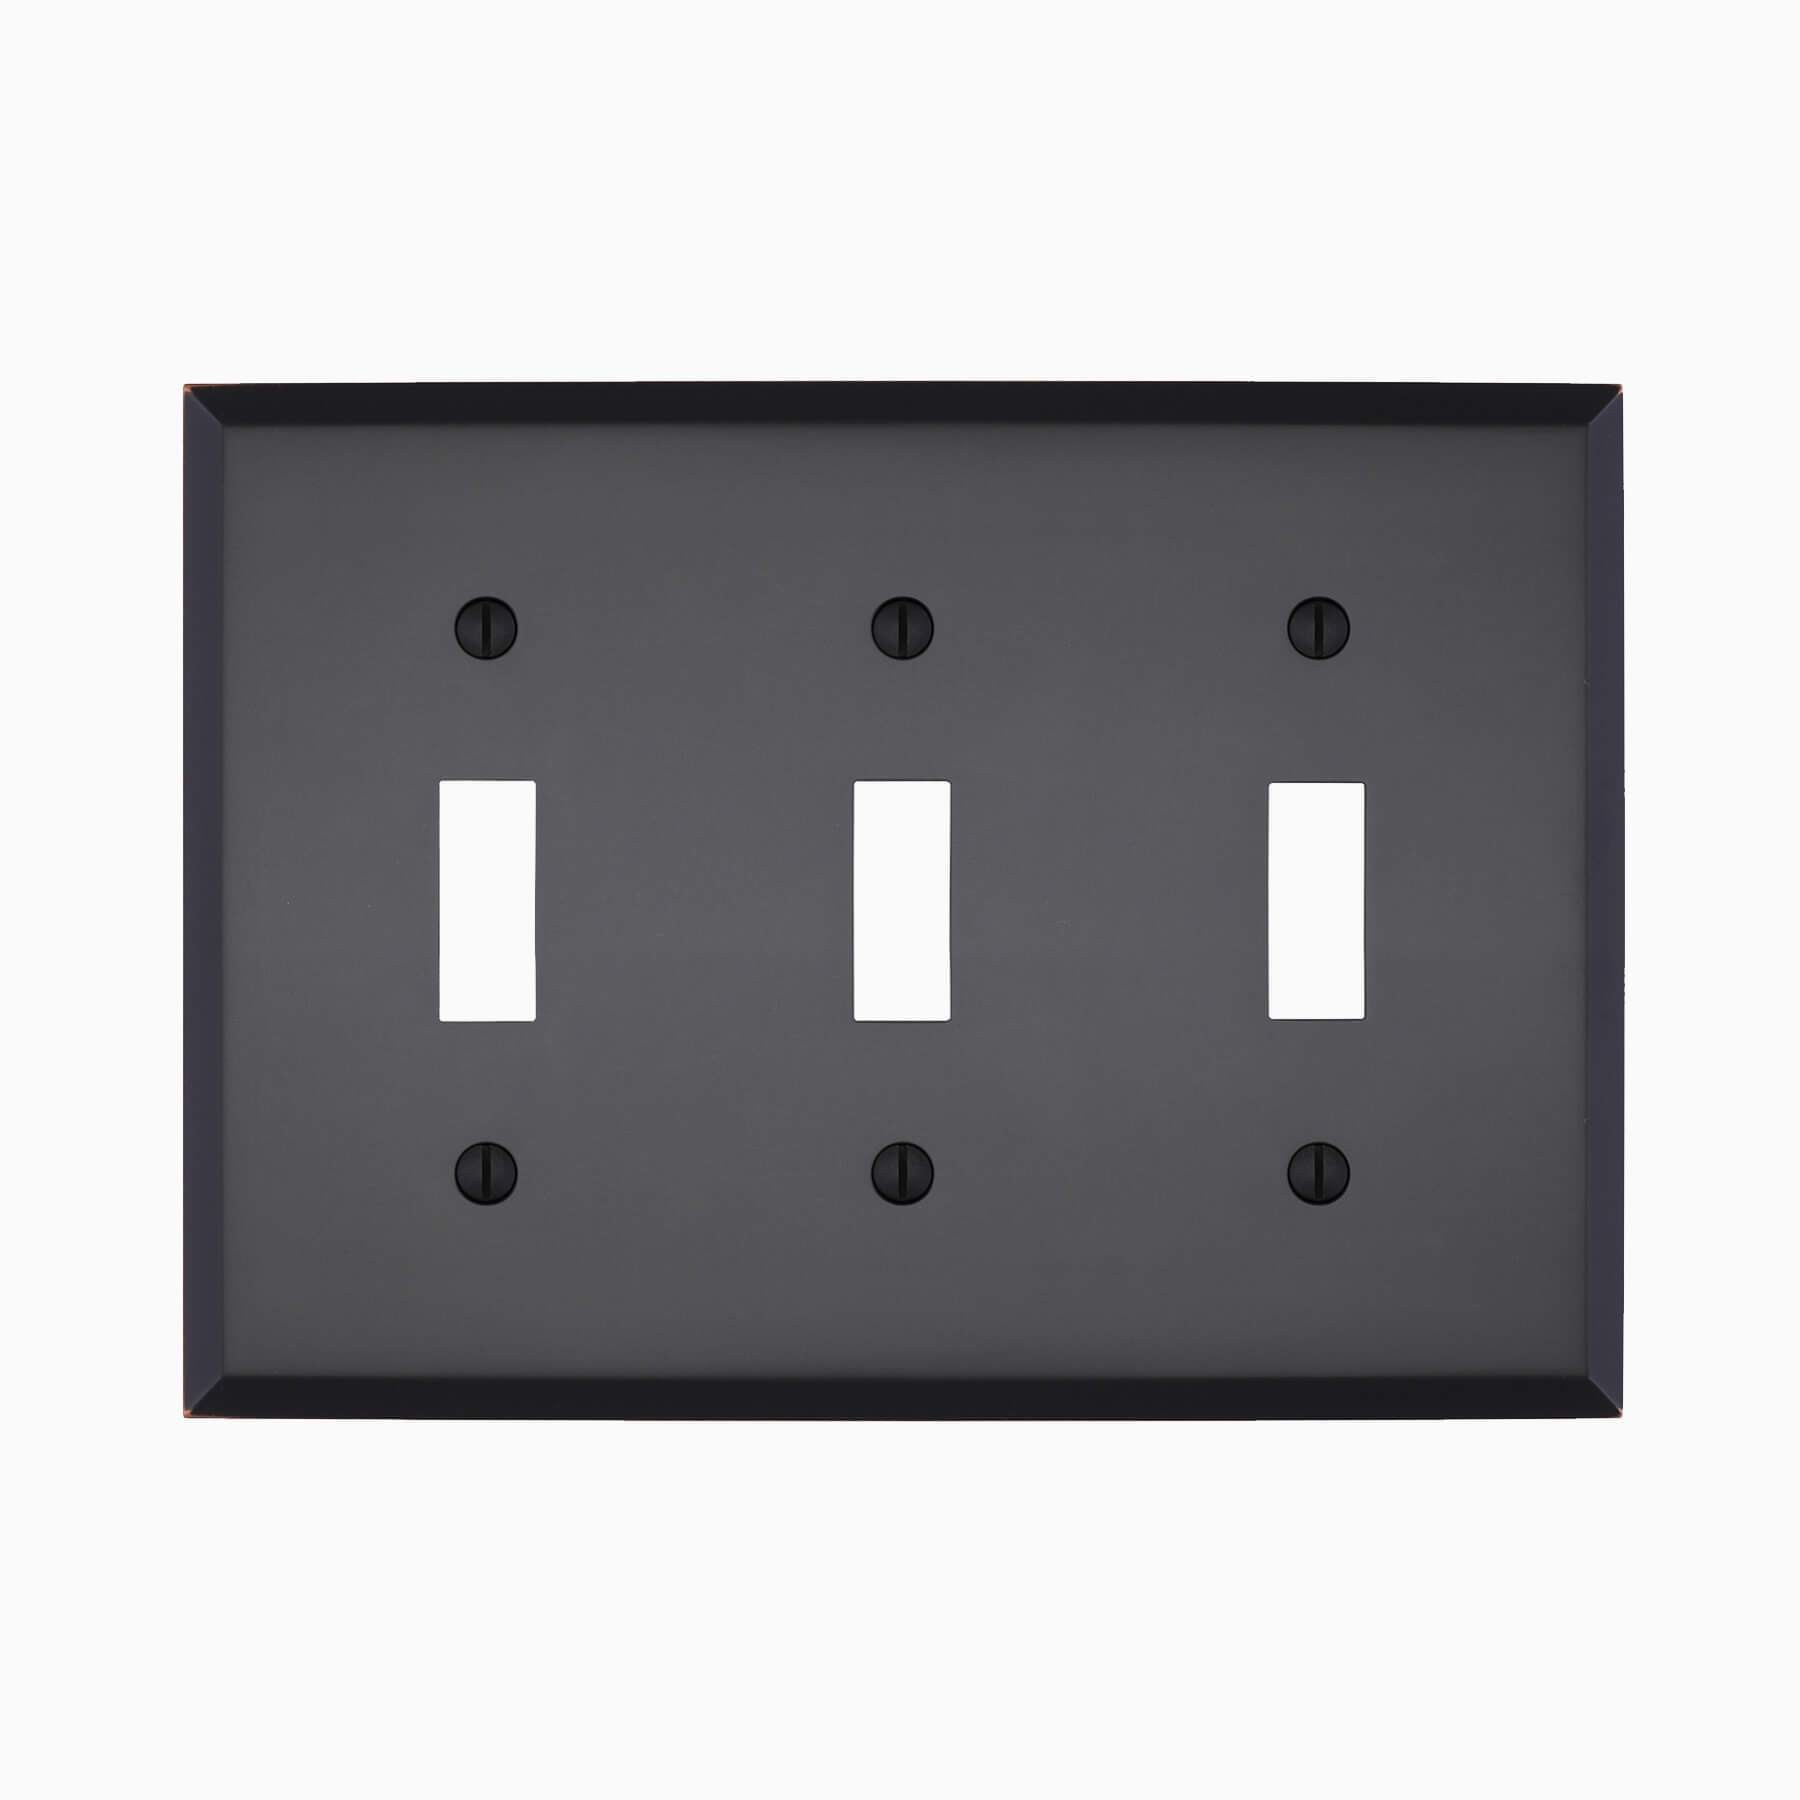 Graham Triple Light Switch Cover Wall Mounted Electrical